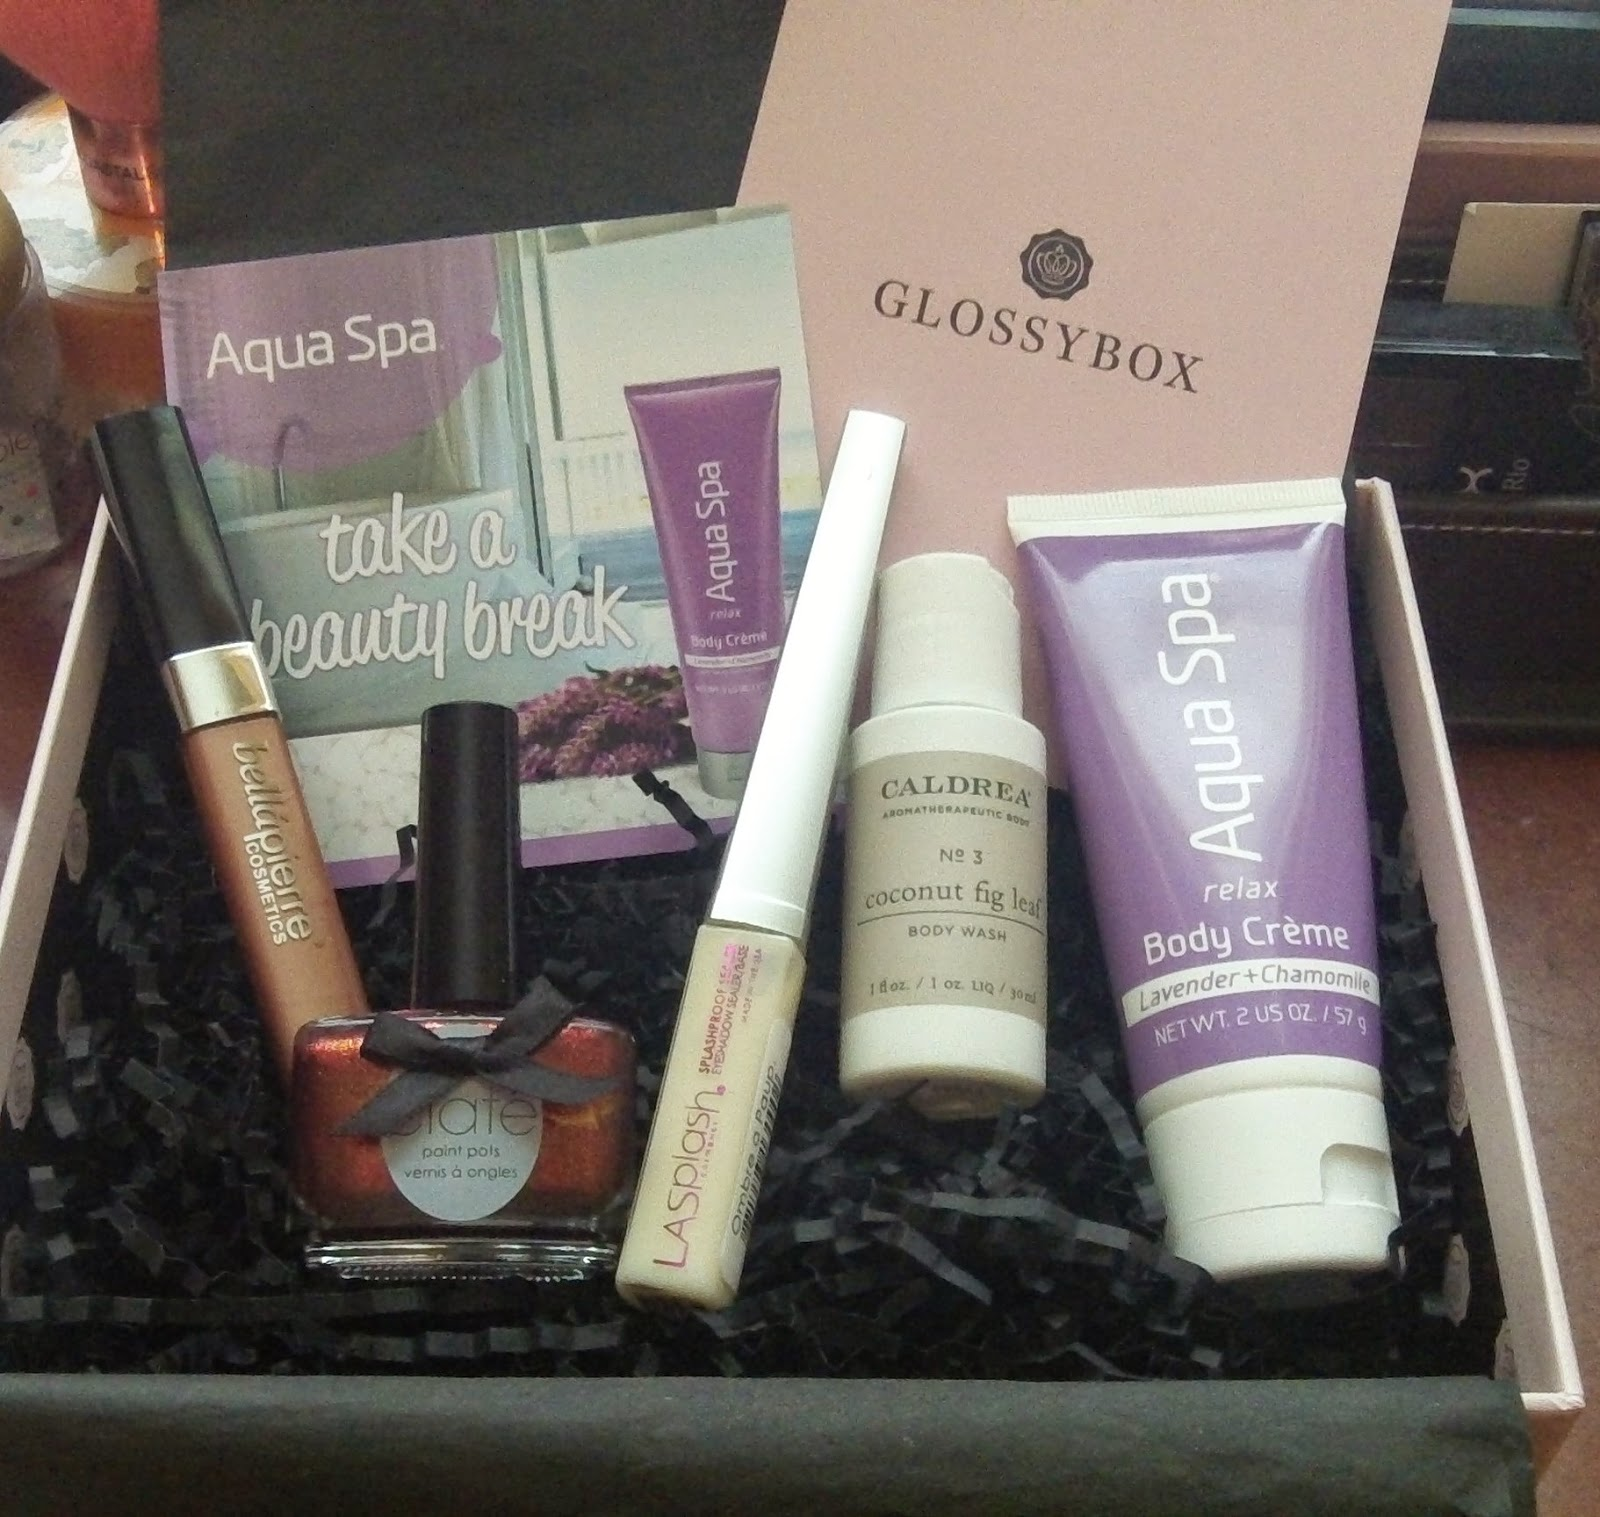 bellapierre gloss, ciate polish, la splash primer, caldrea body wash, aqua spa body creme